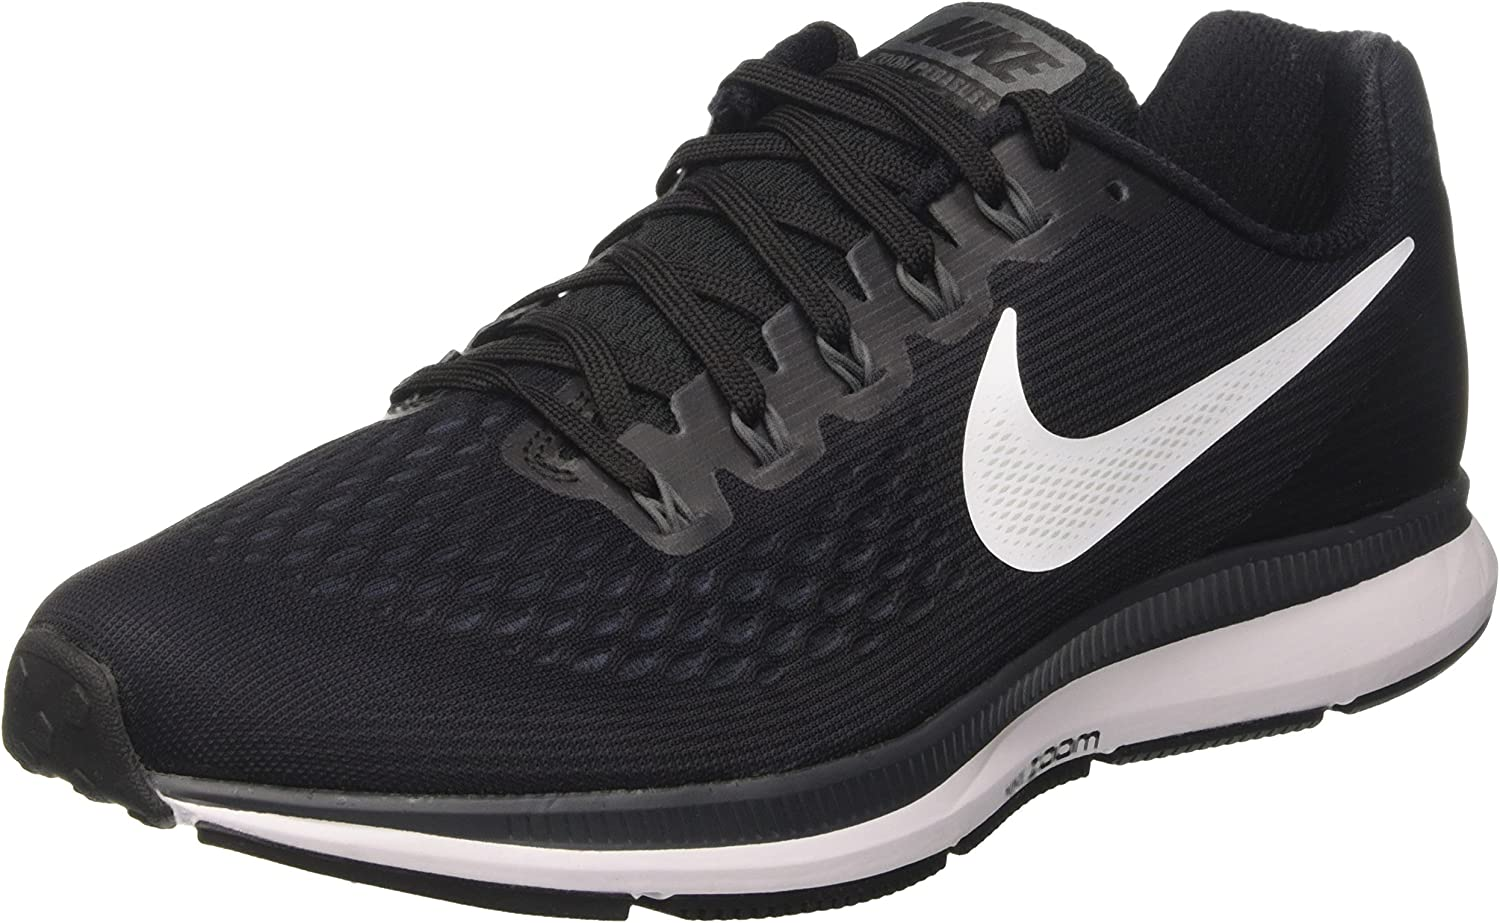 NIKE Men s Air Zoom Pegasus 34, Black White-Dark Grey, 6.5 M US